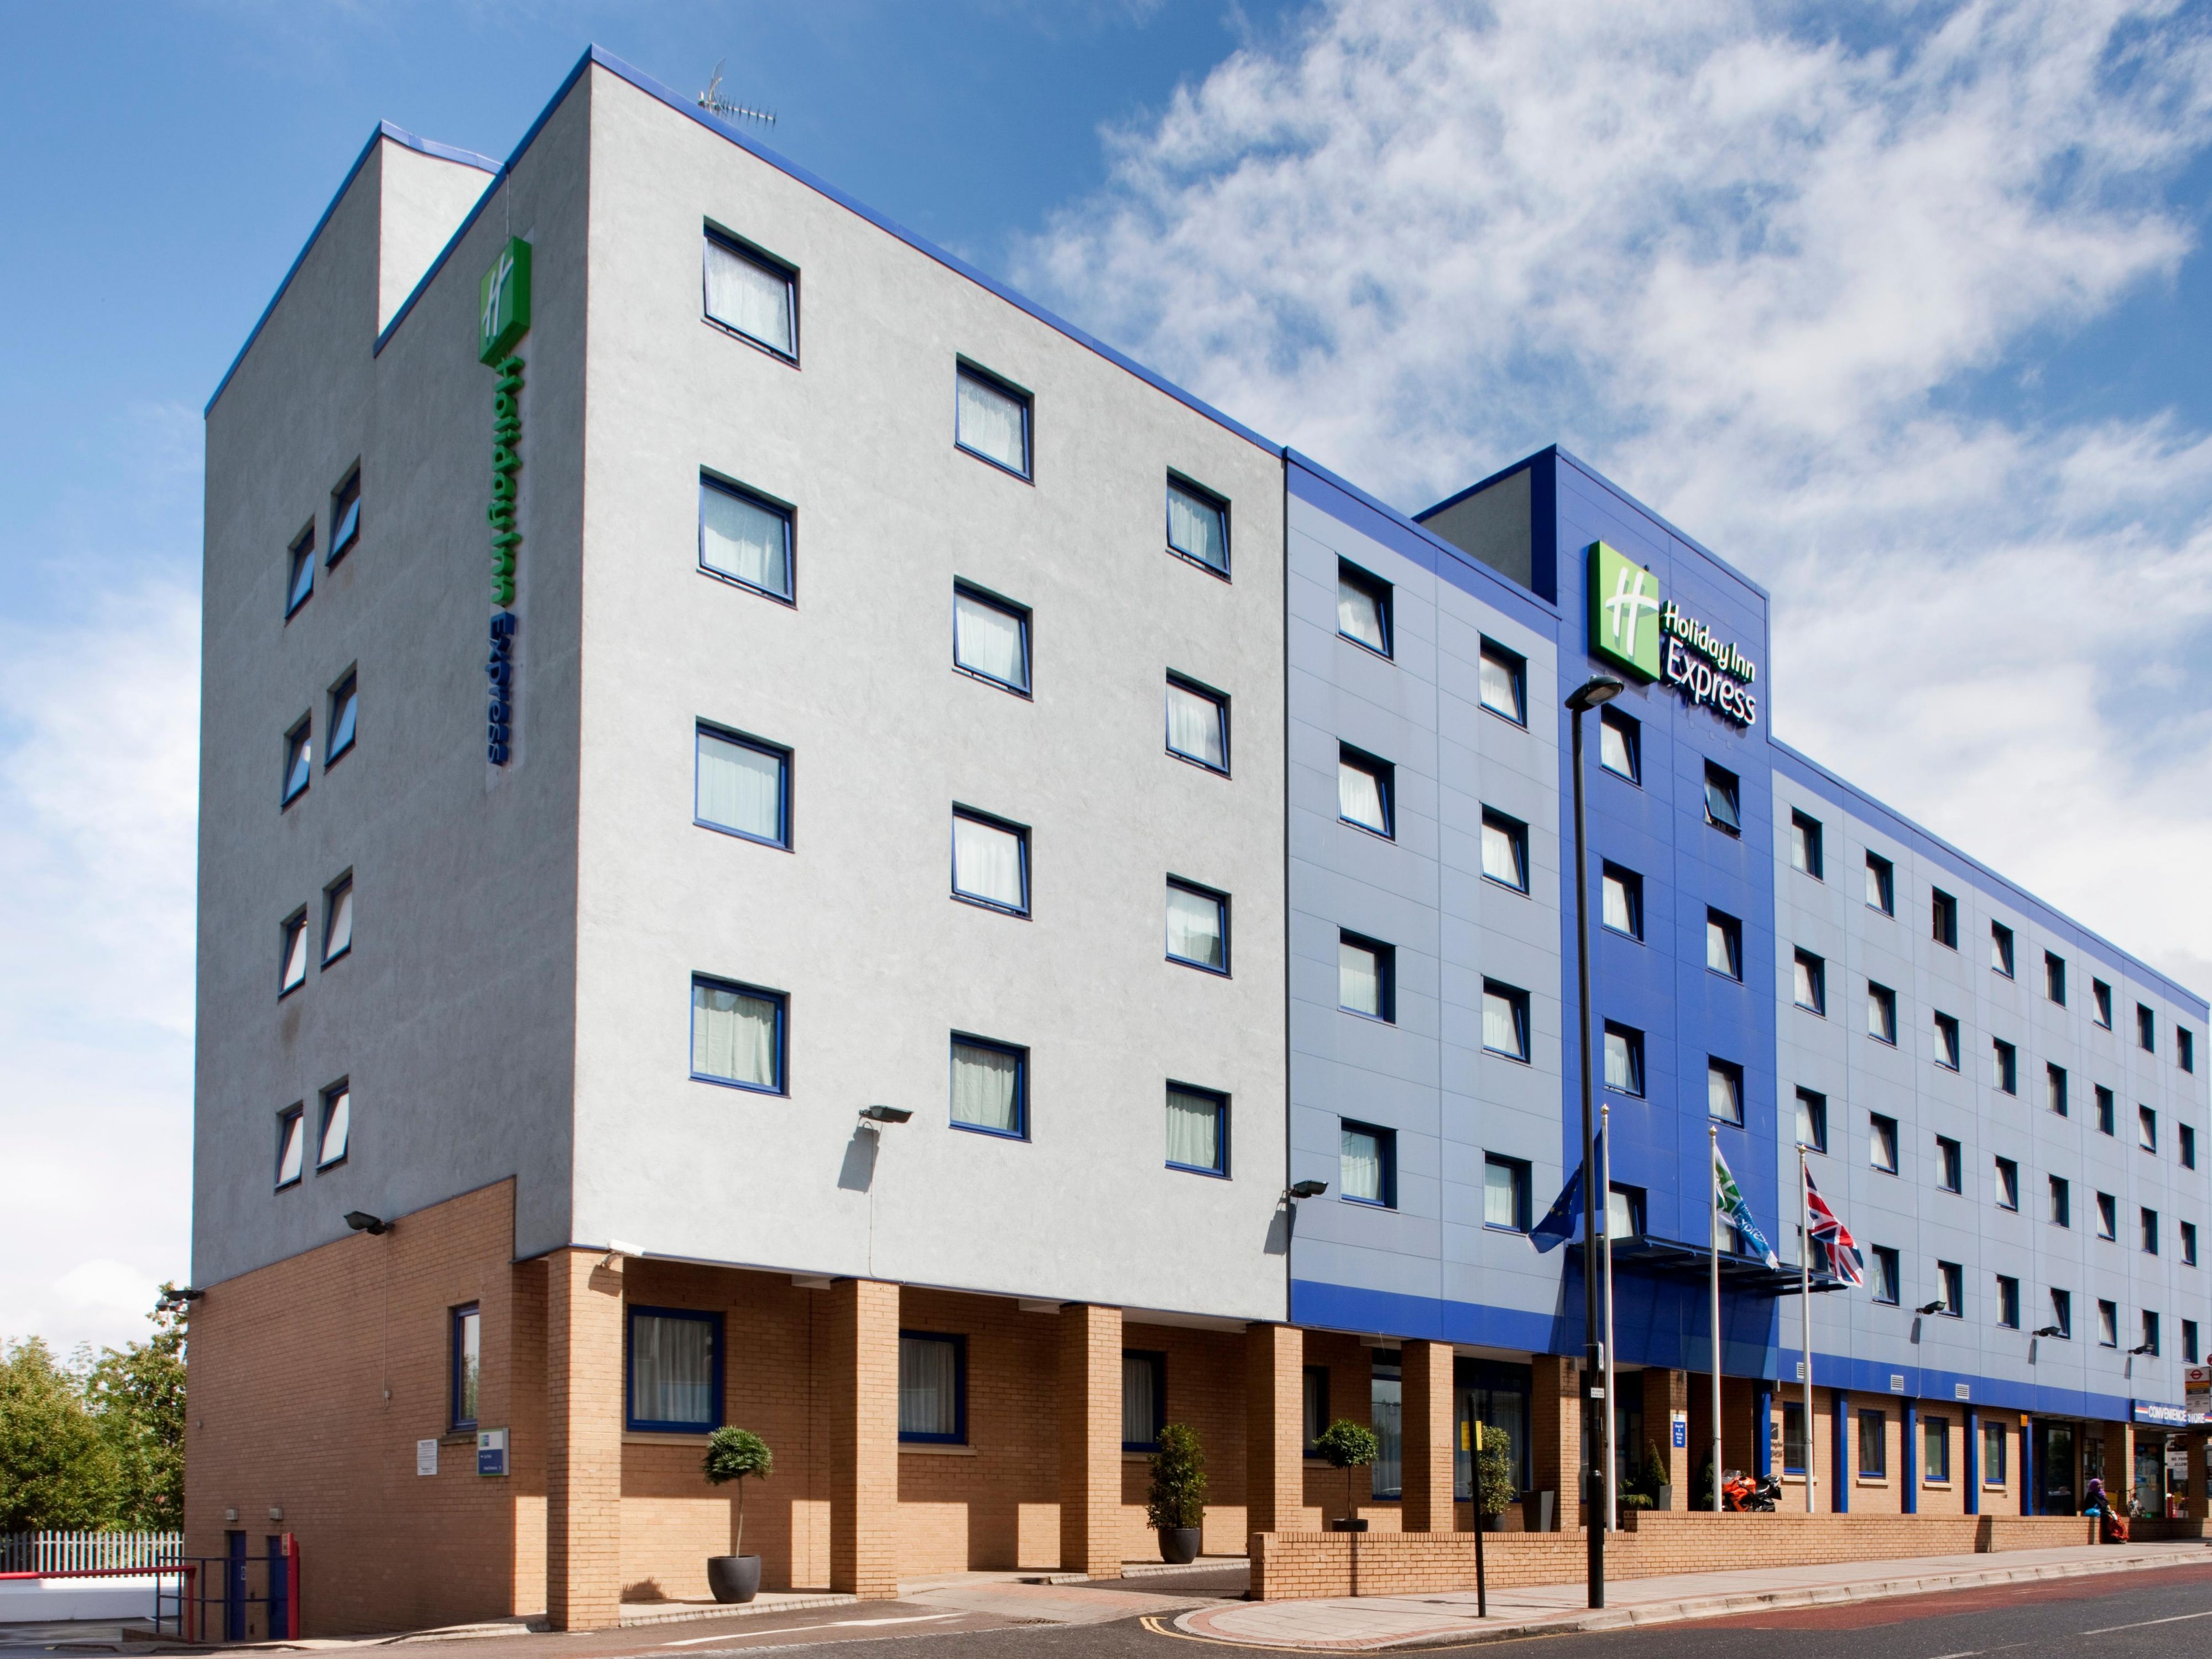 Holiday Inn Express Surrey Hotels | Cheap Hotels in Surrey by IHG